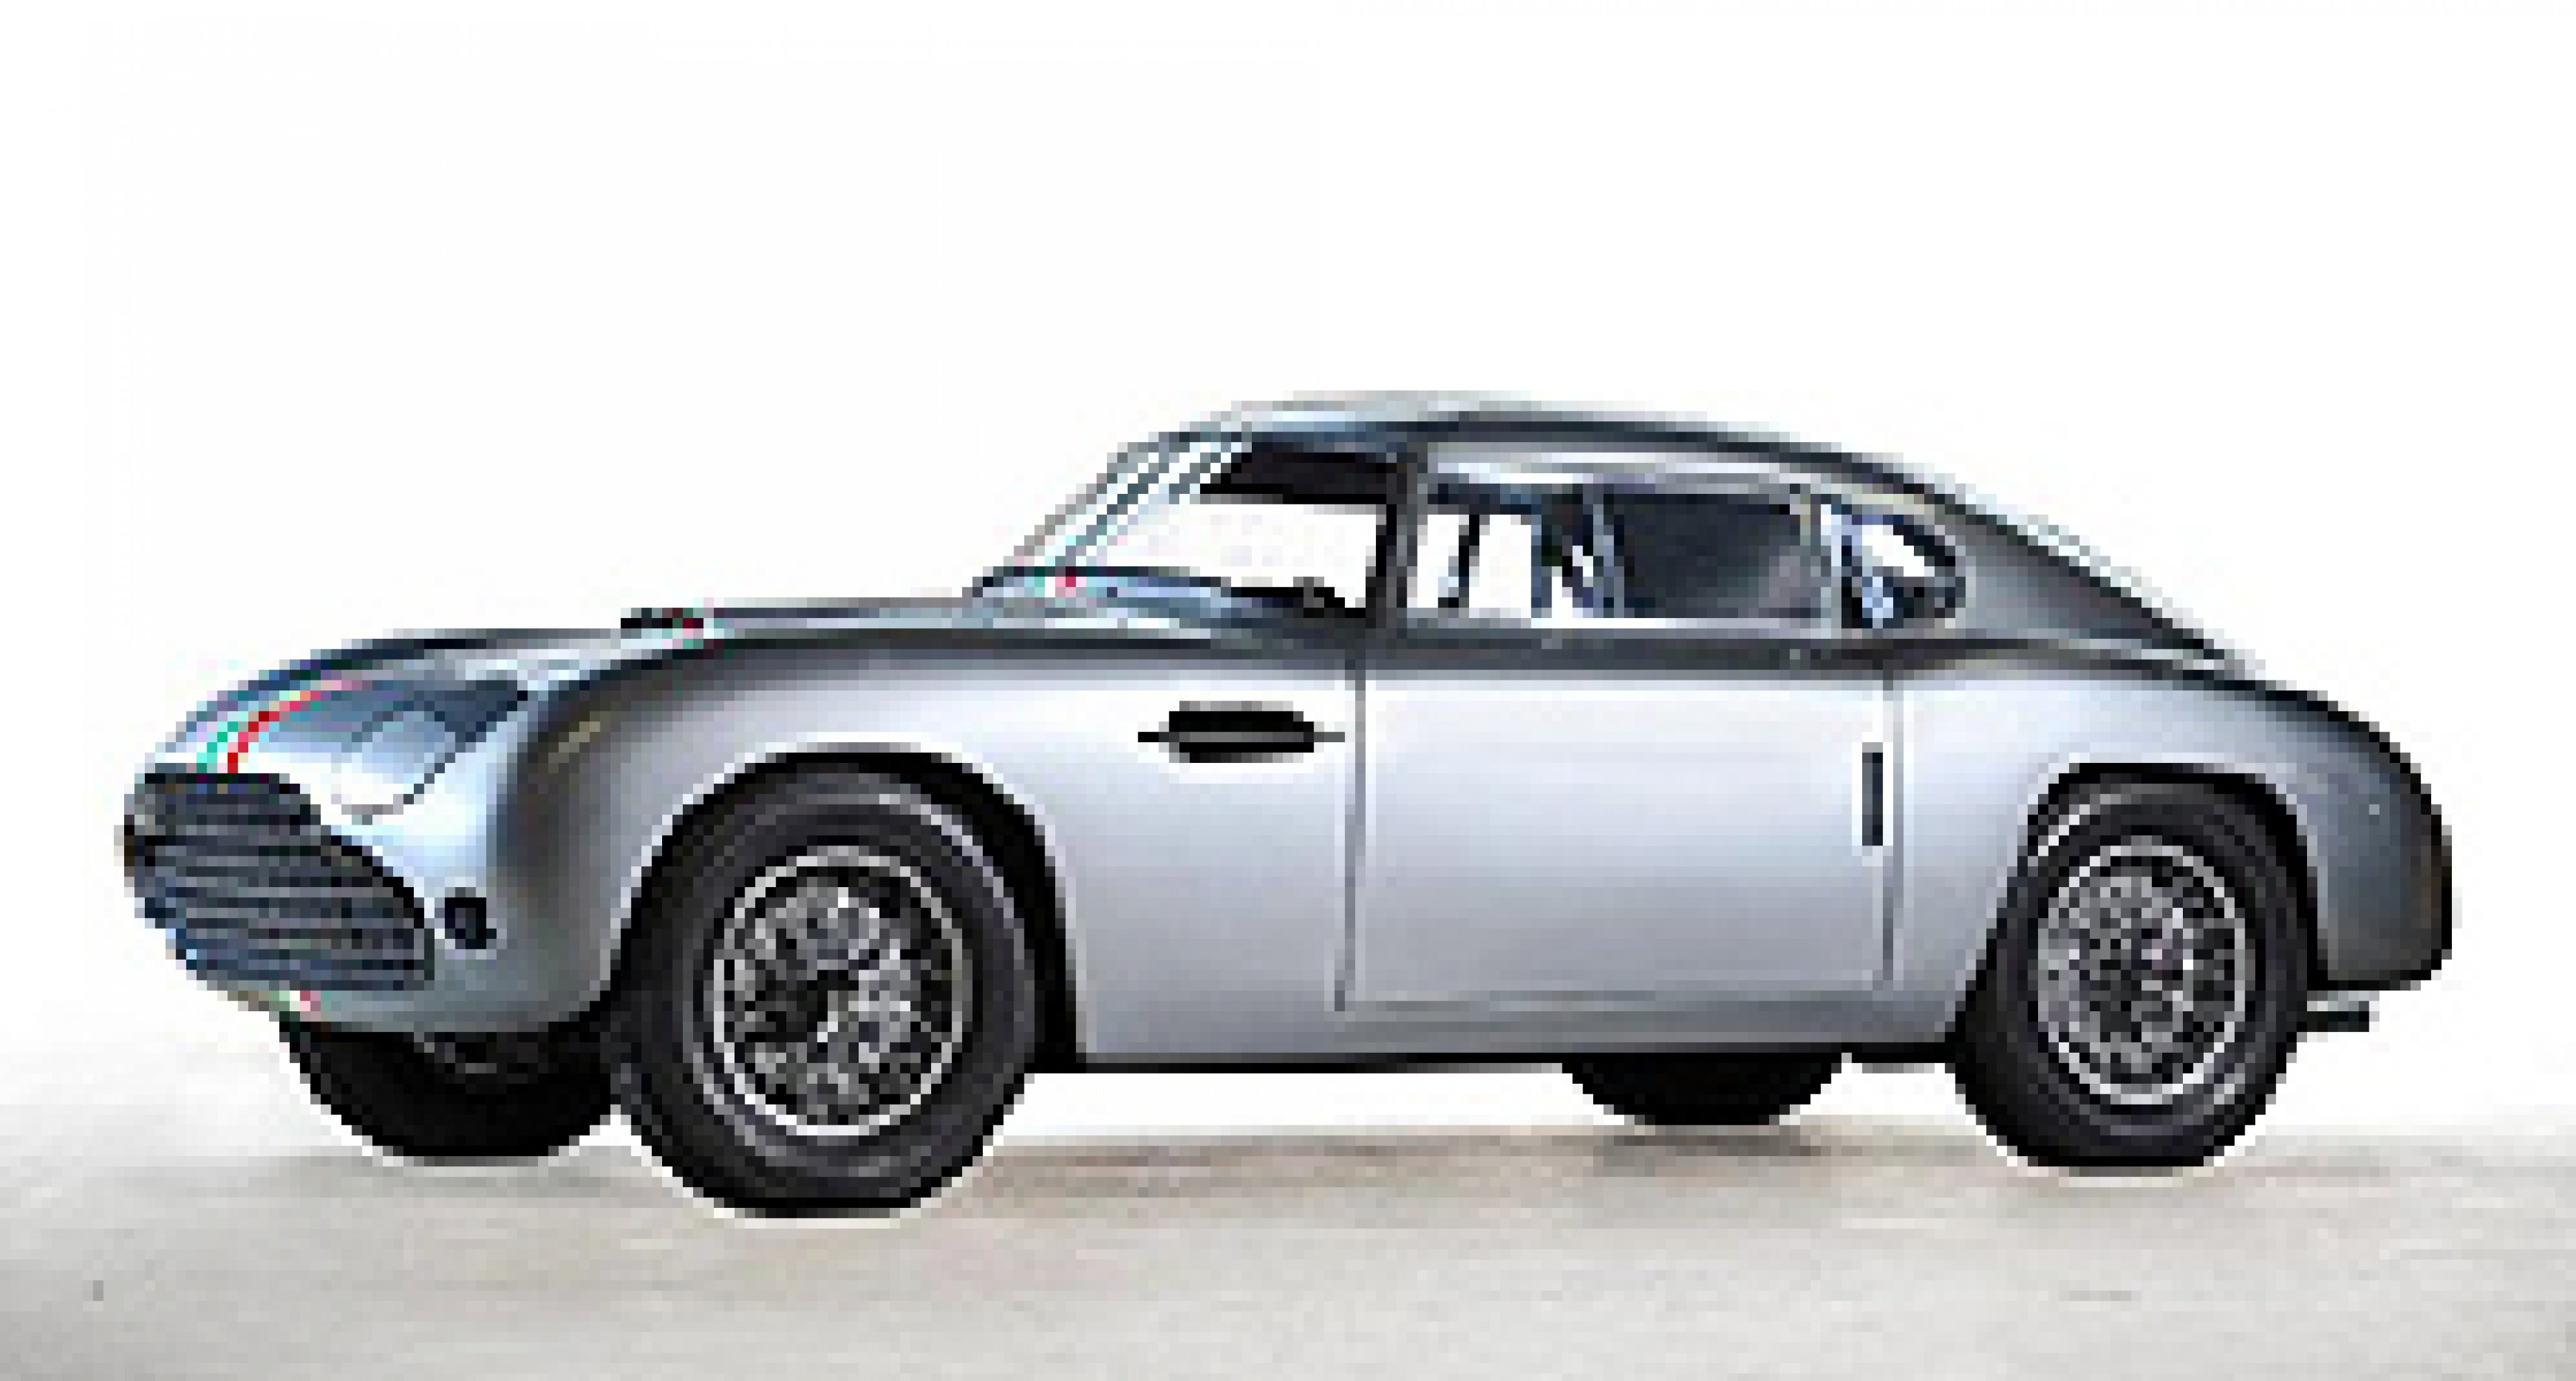 Gooding & Co.: The Amelia Island Auction Mar 11 2011 - Preview